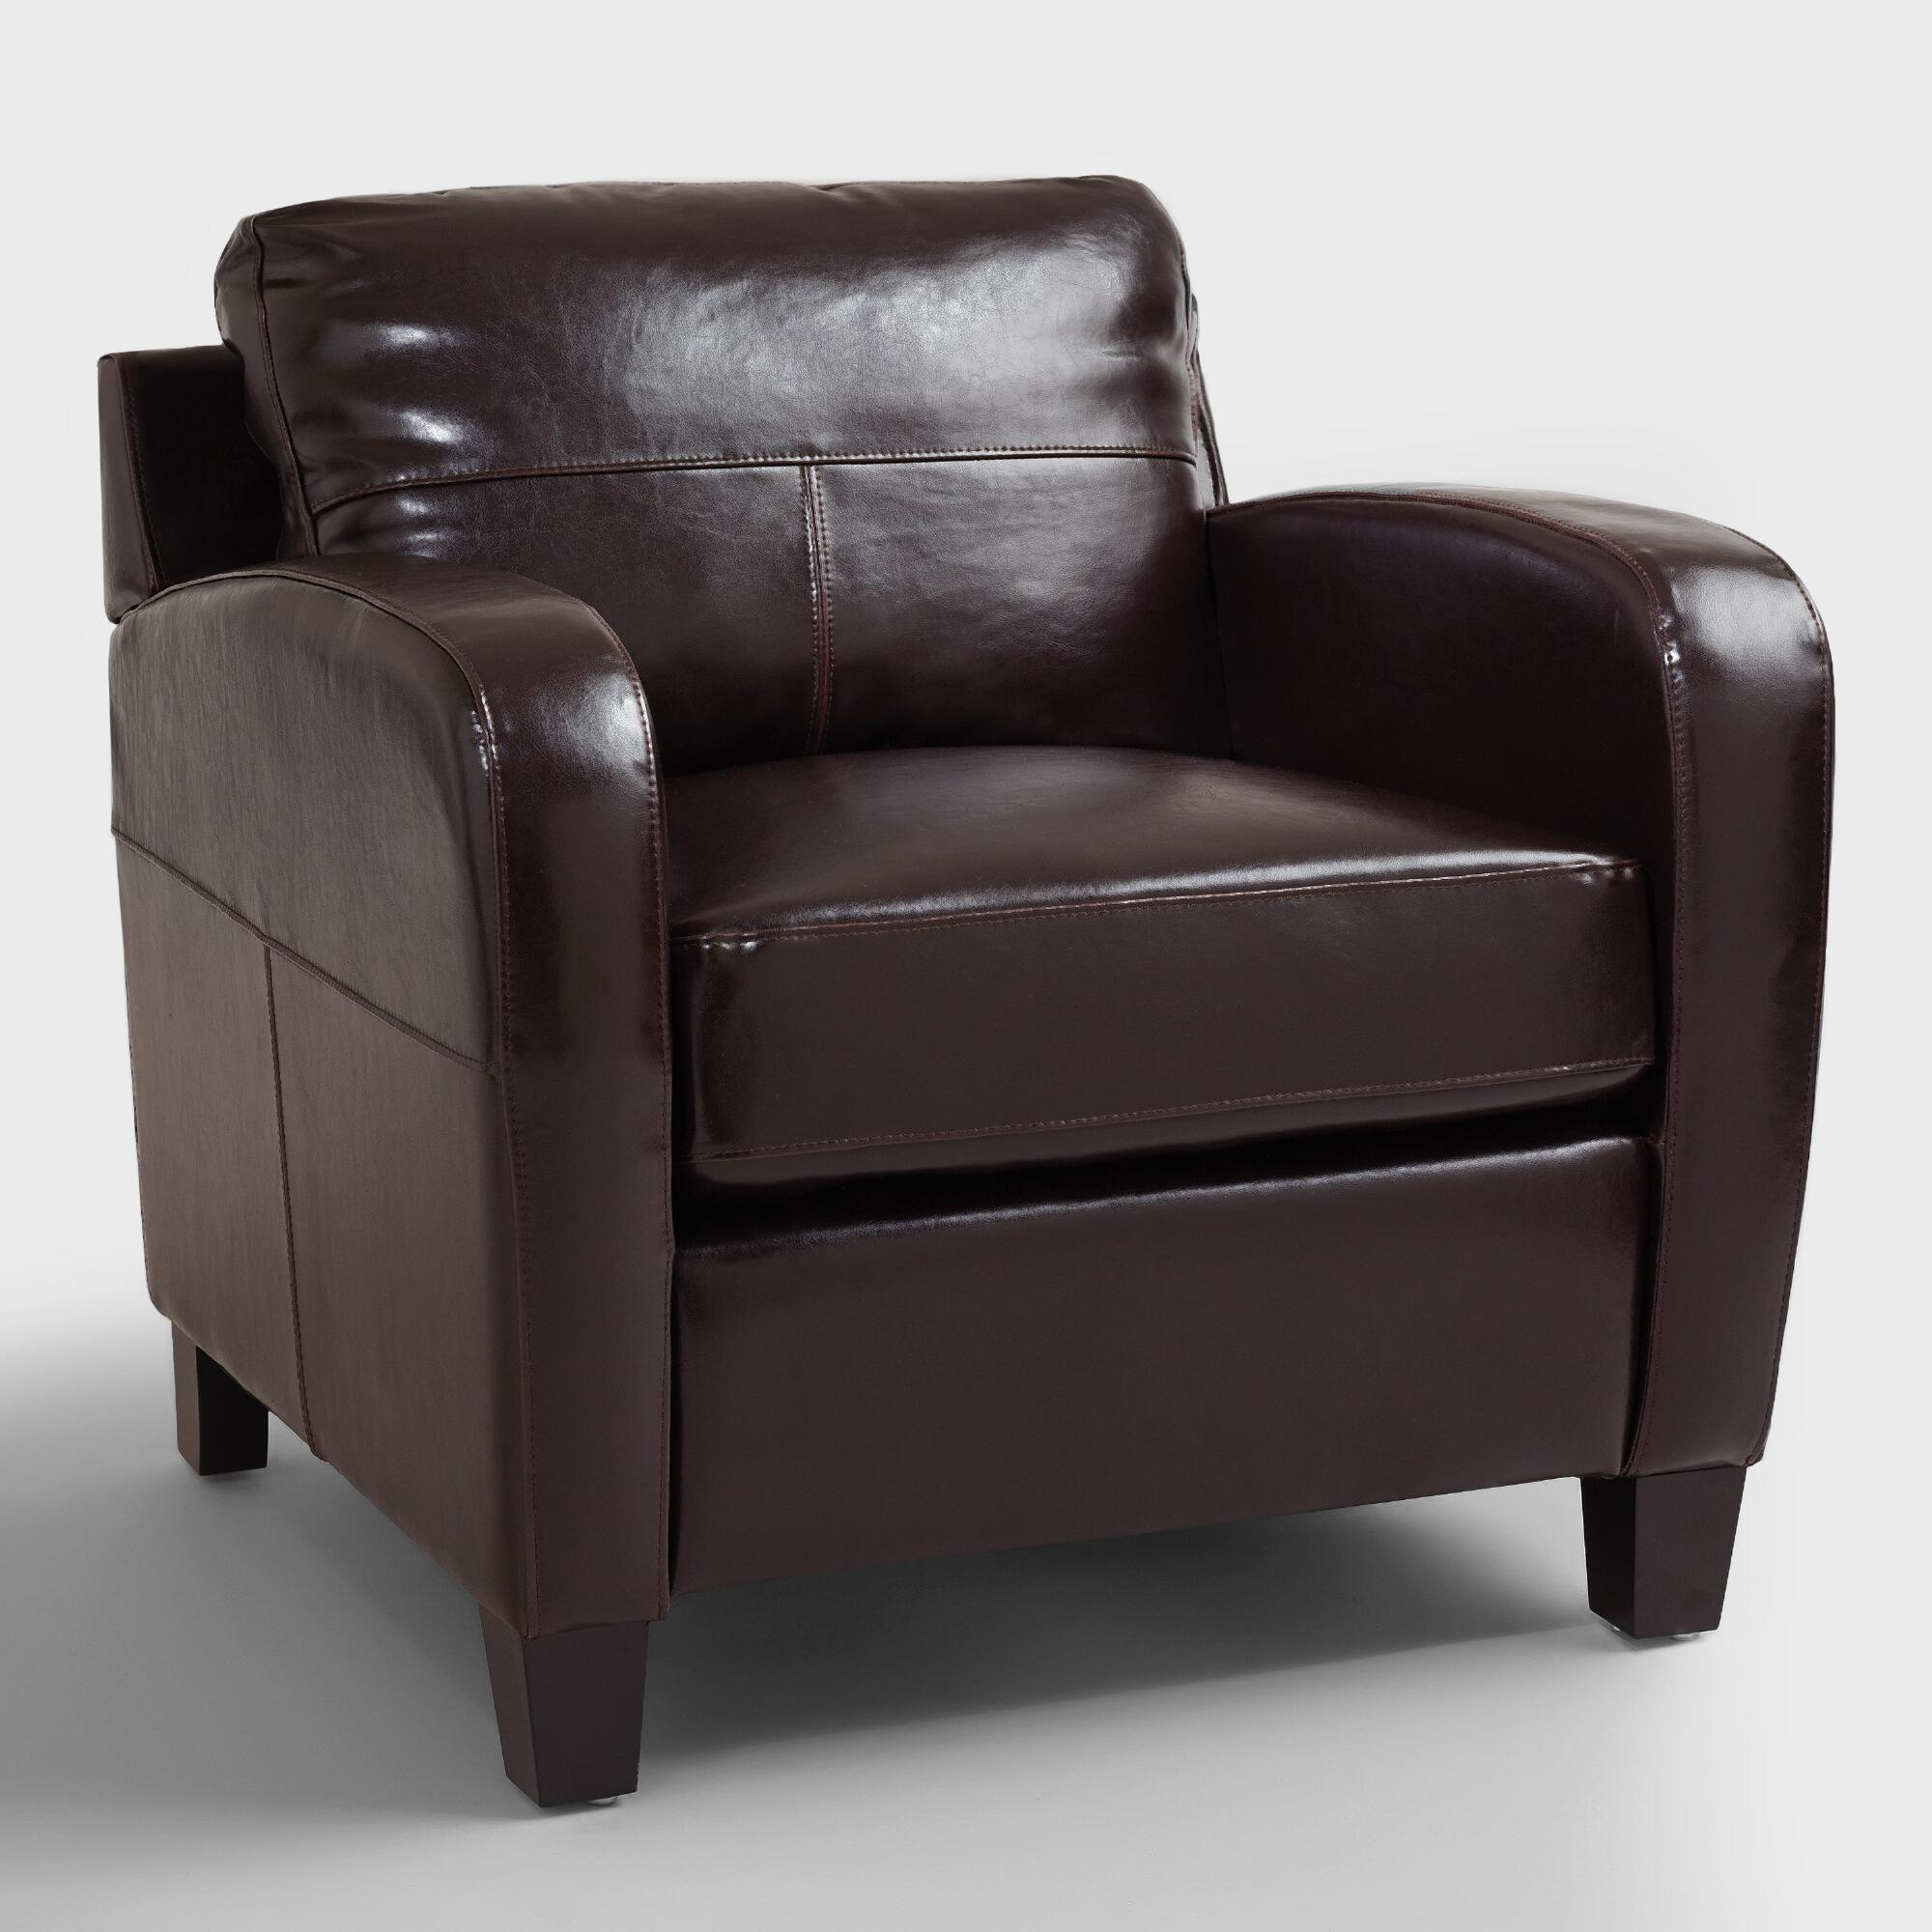 Espresso Mason Bi Cast Leather Chair World Market